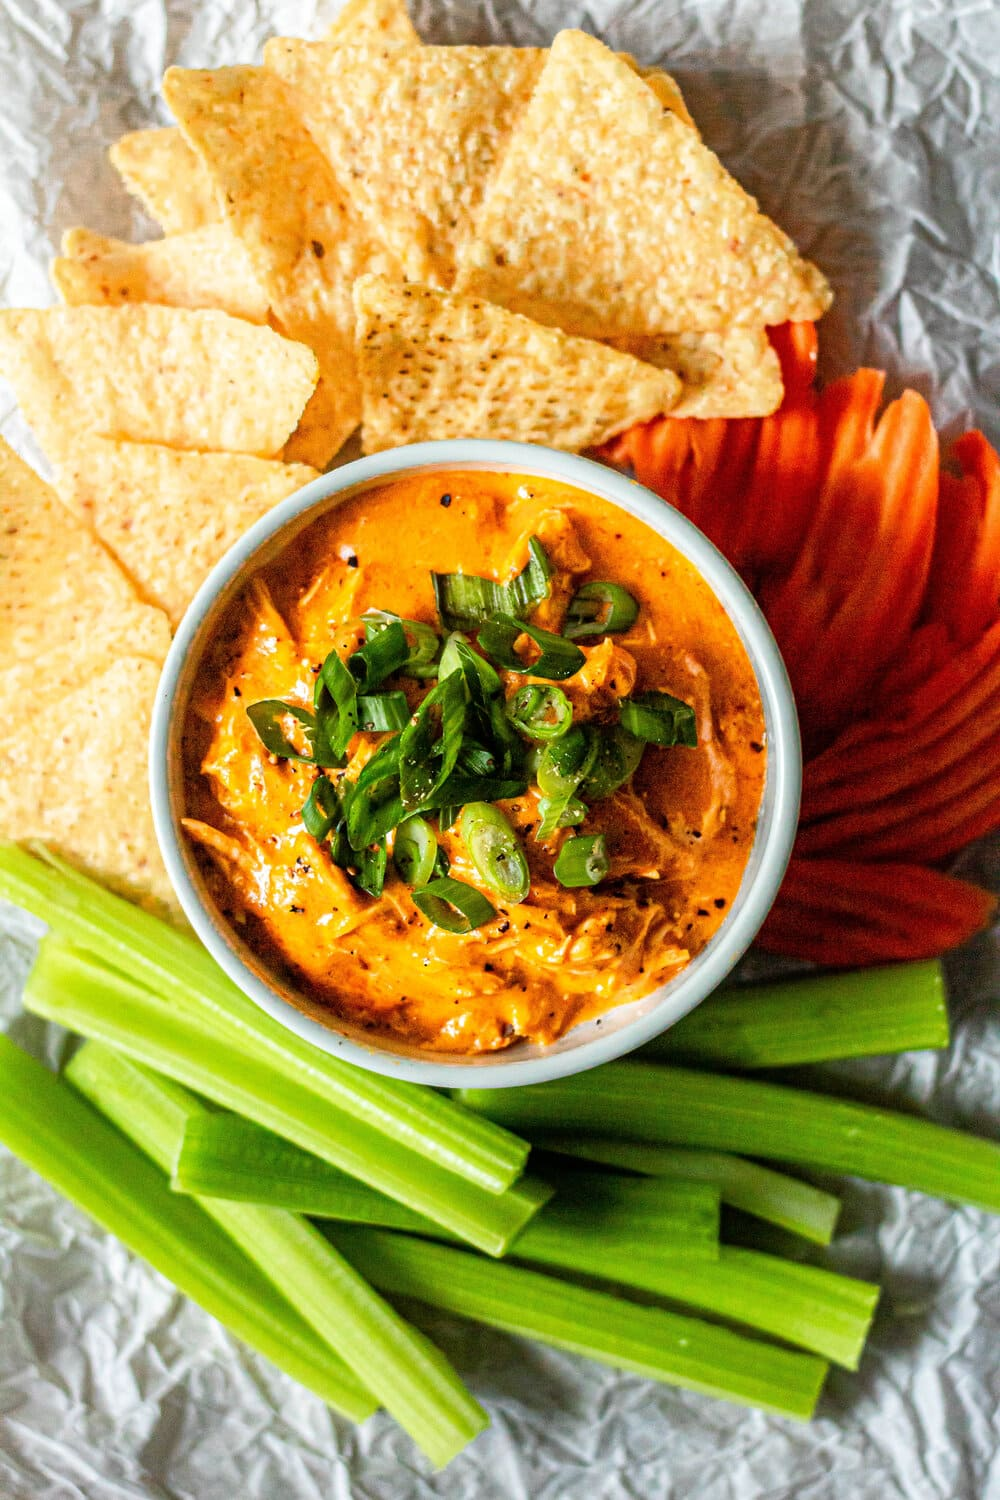 Dairy Free Buffalo Chicken Dip in white ramekin surrounded by tortilla chips, carrots, and celery